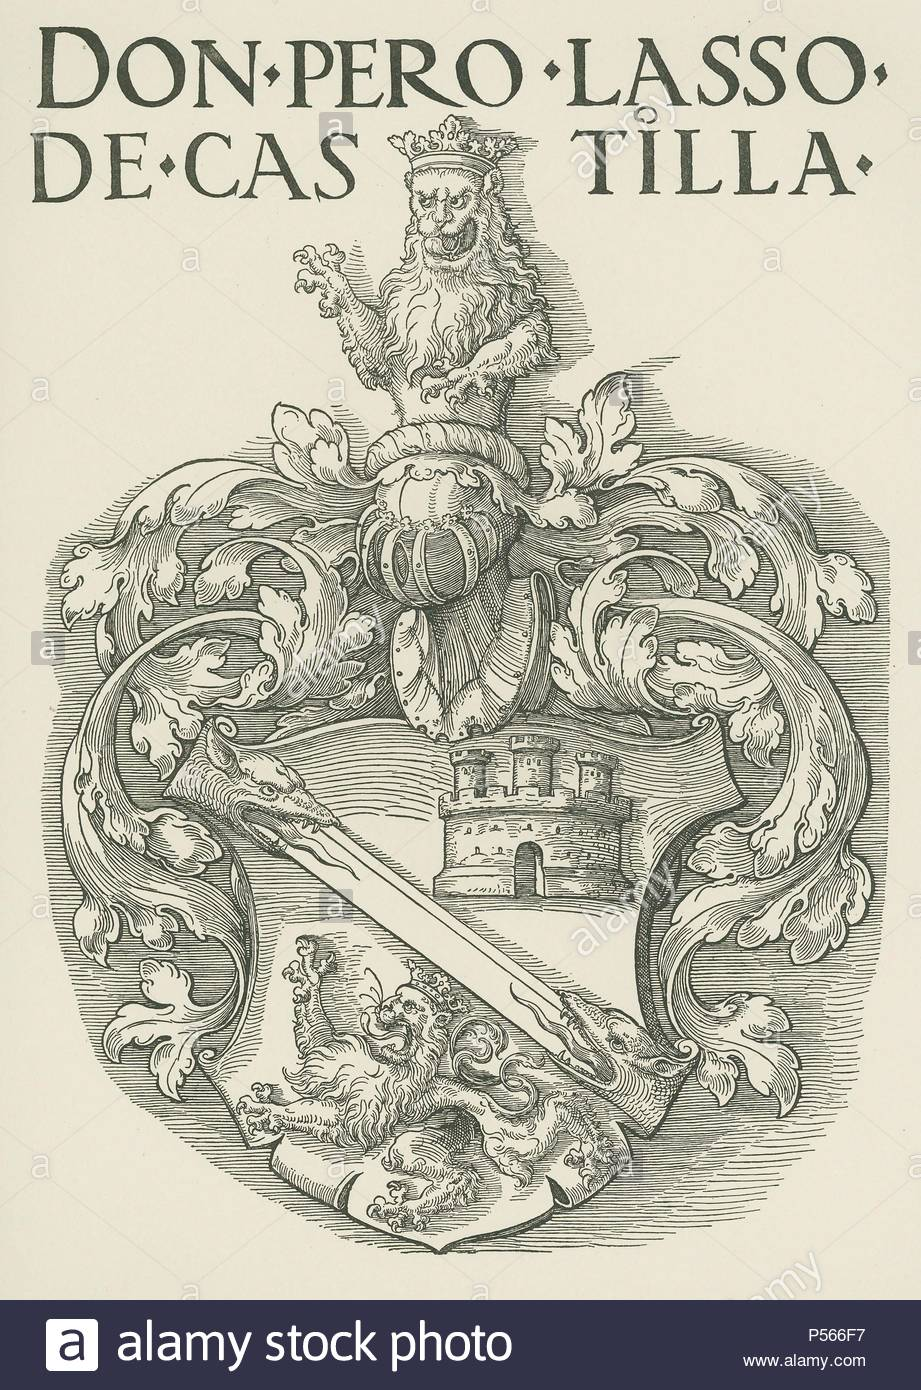 Coat of Arms of Don Pedro Lasso de Castilla. Around 1530. Woodcut, 470 x  323mm. Author: Albrecht Dürer (1471-1528).